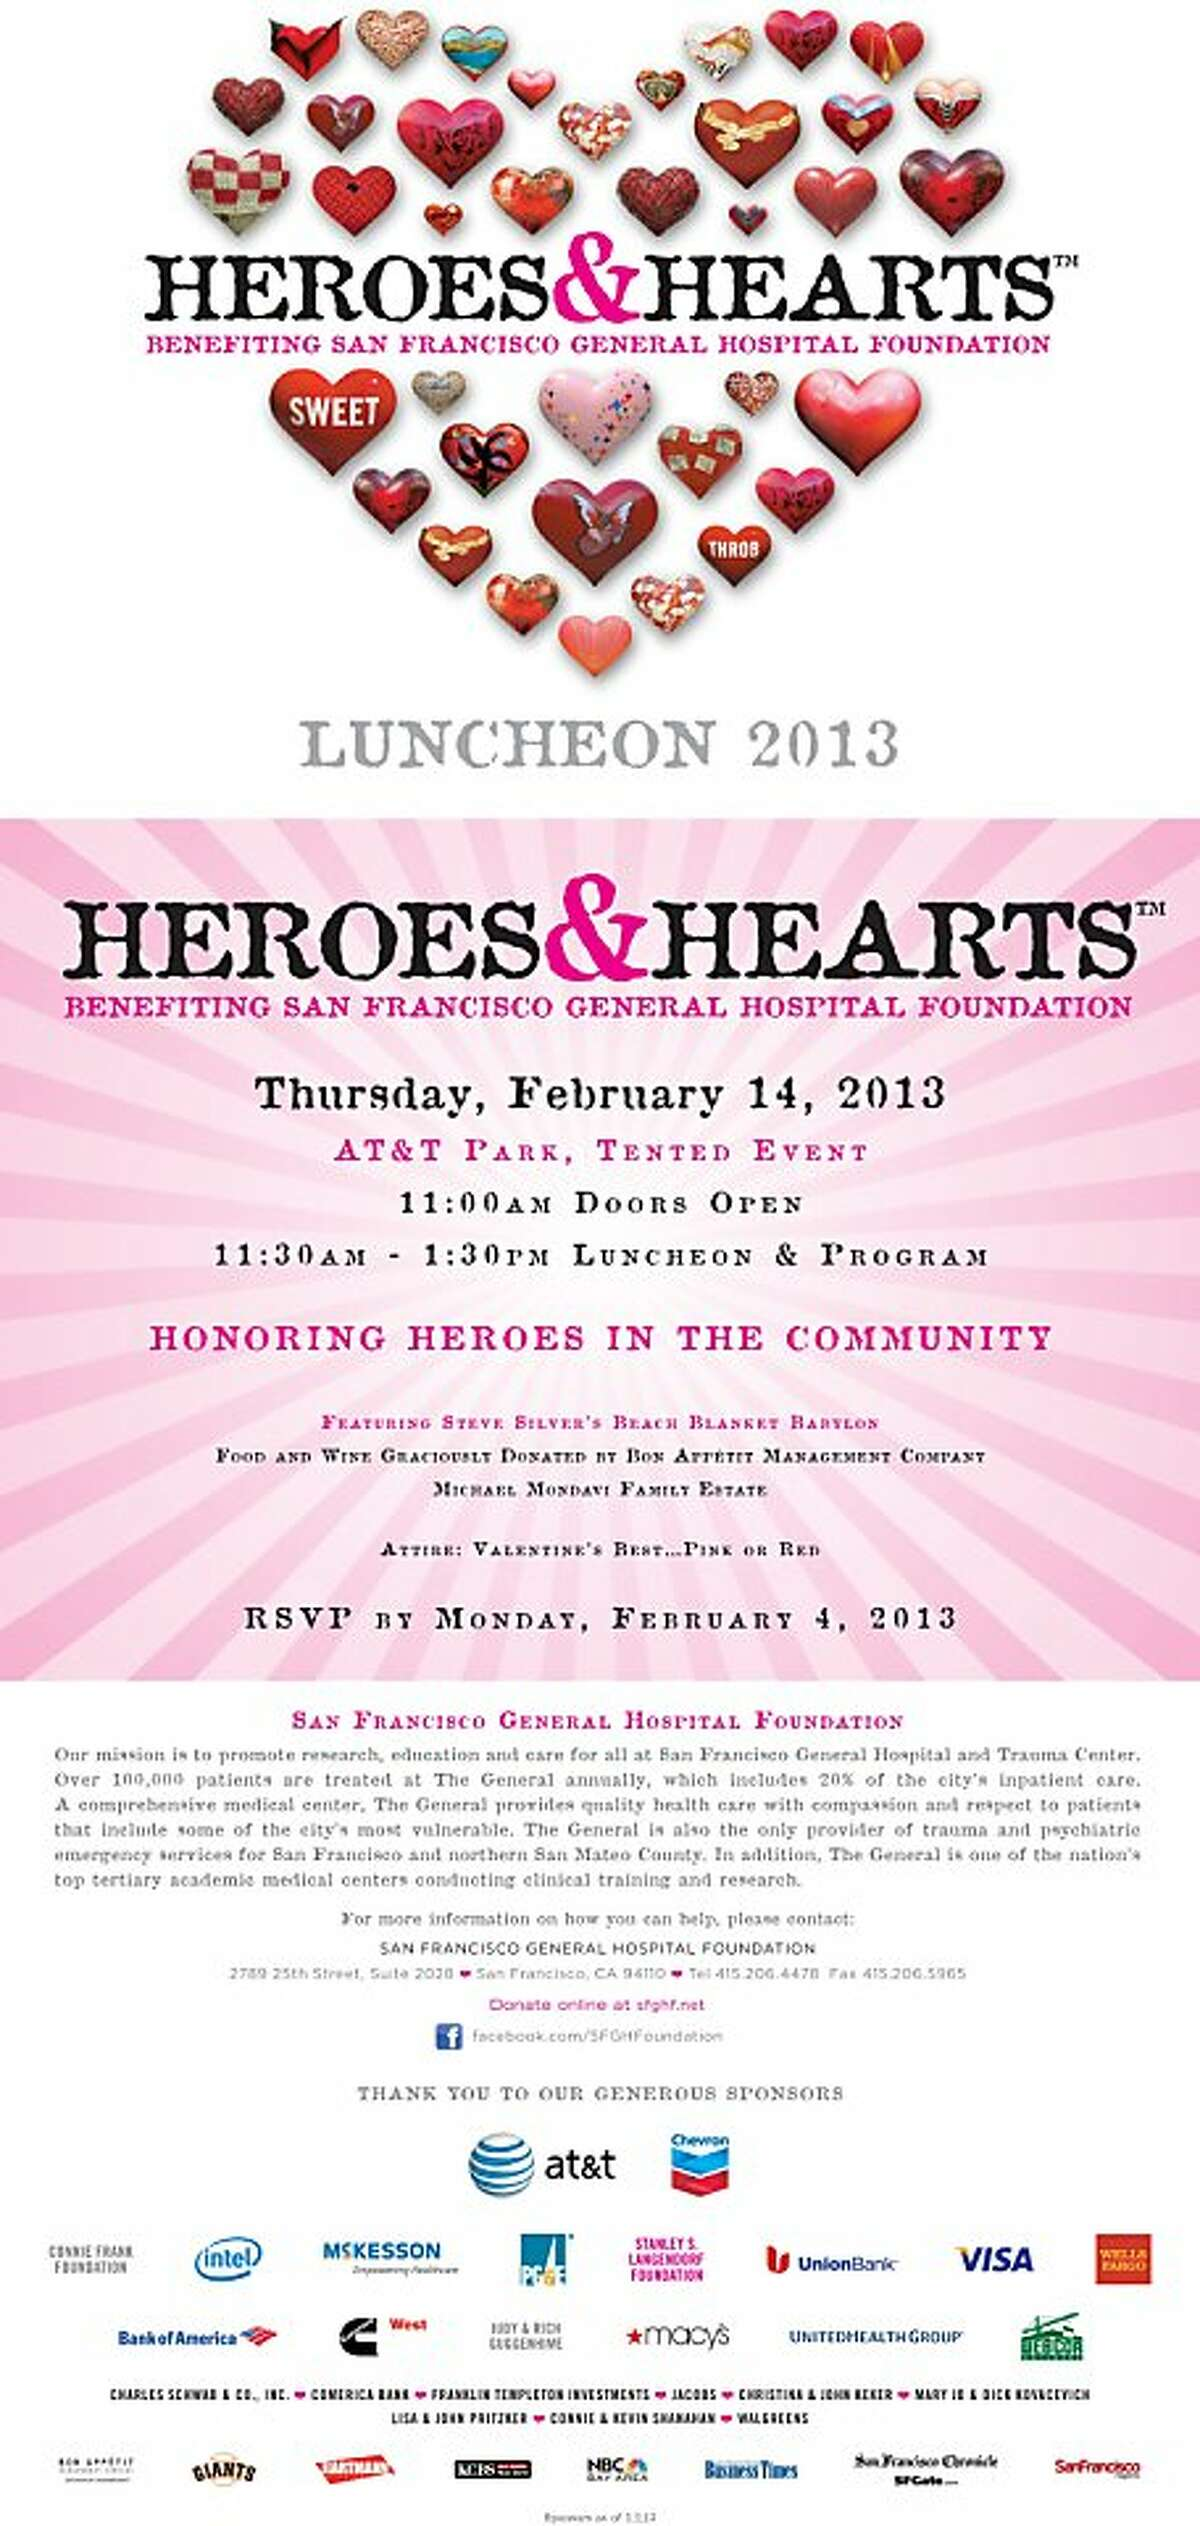 Heroes and Hearts 2013